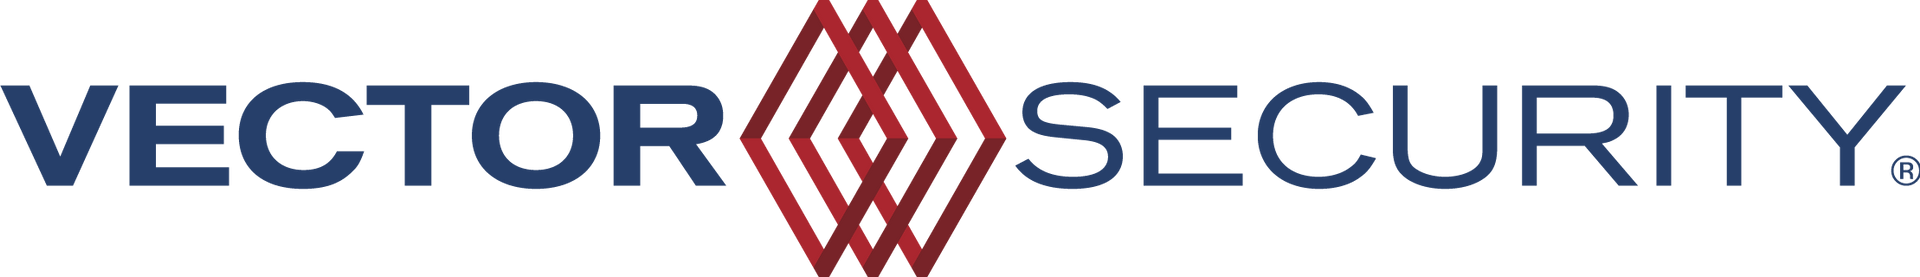 vector-security-logo.png